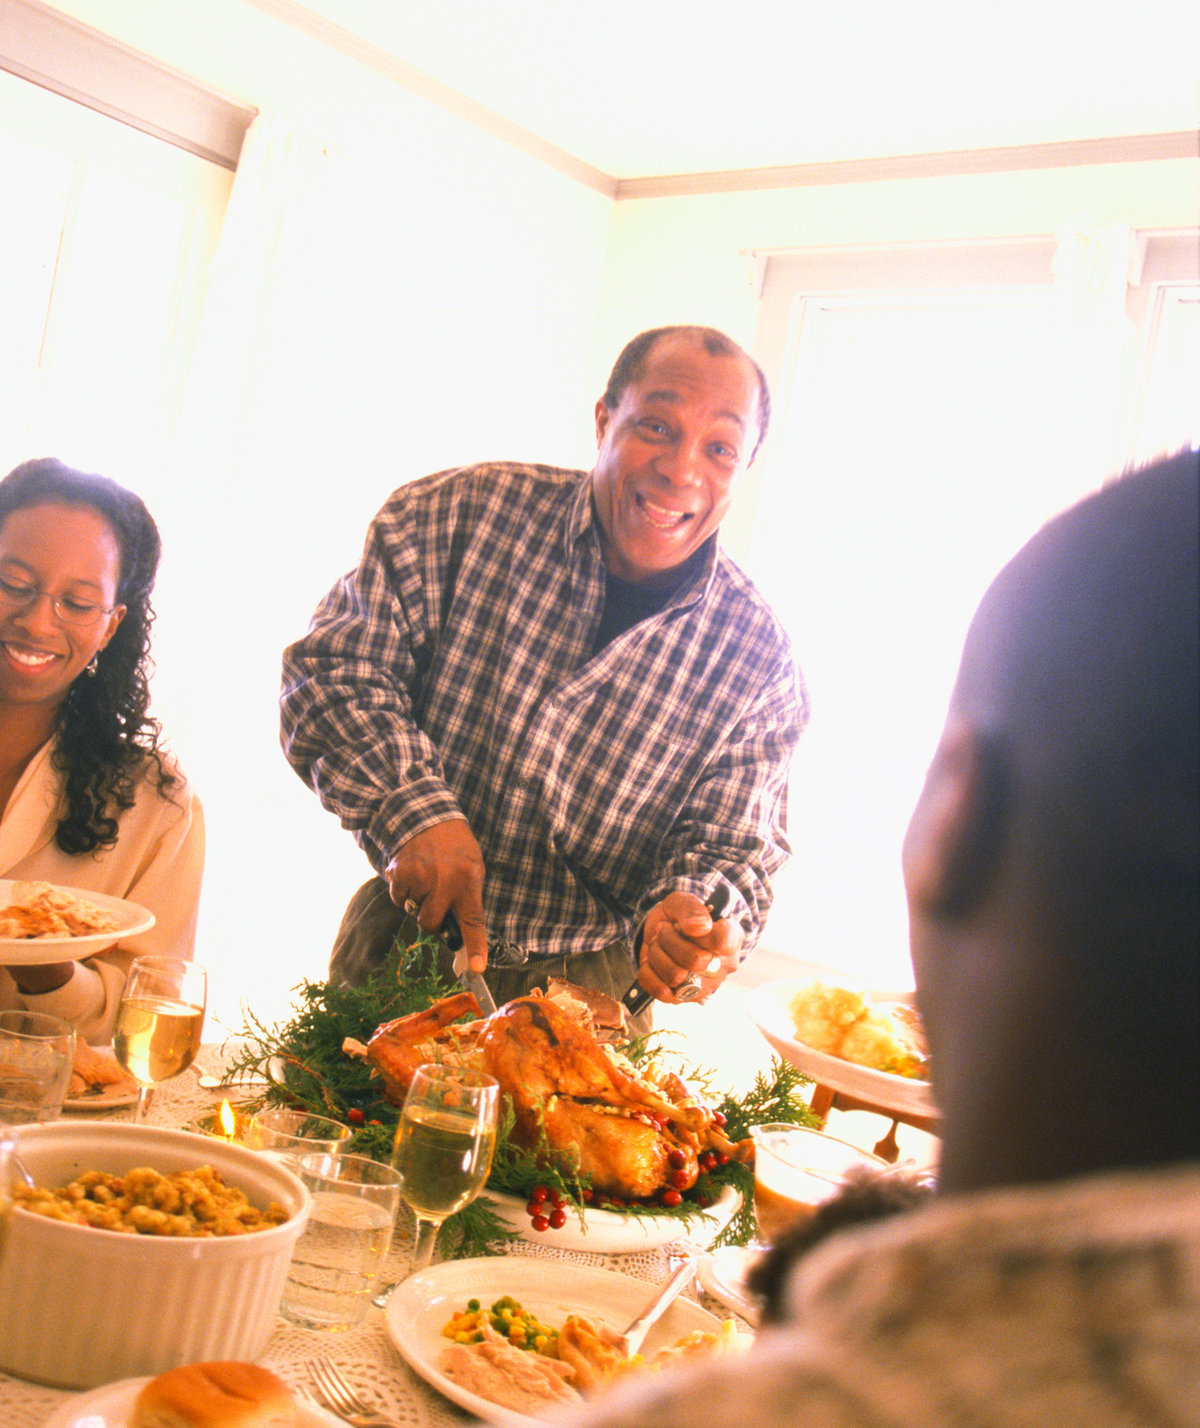 10 Totally Safe, Nonpolitical Topics to Discuss at Your Holiday Dinner